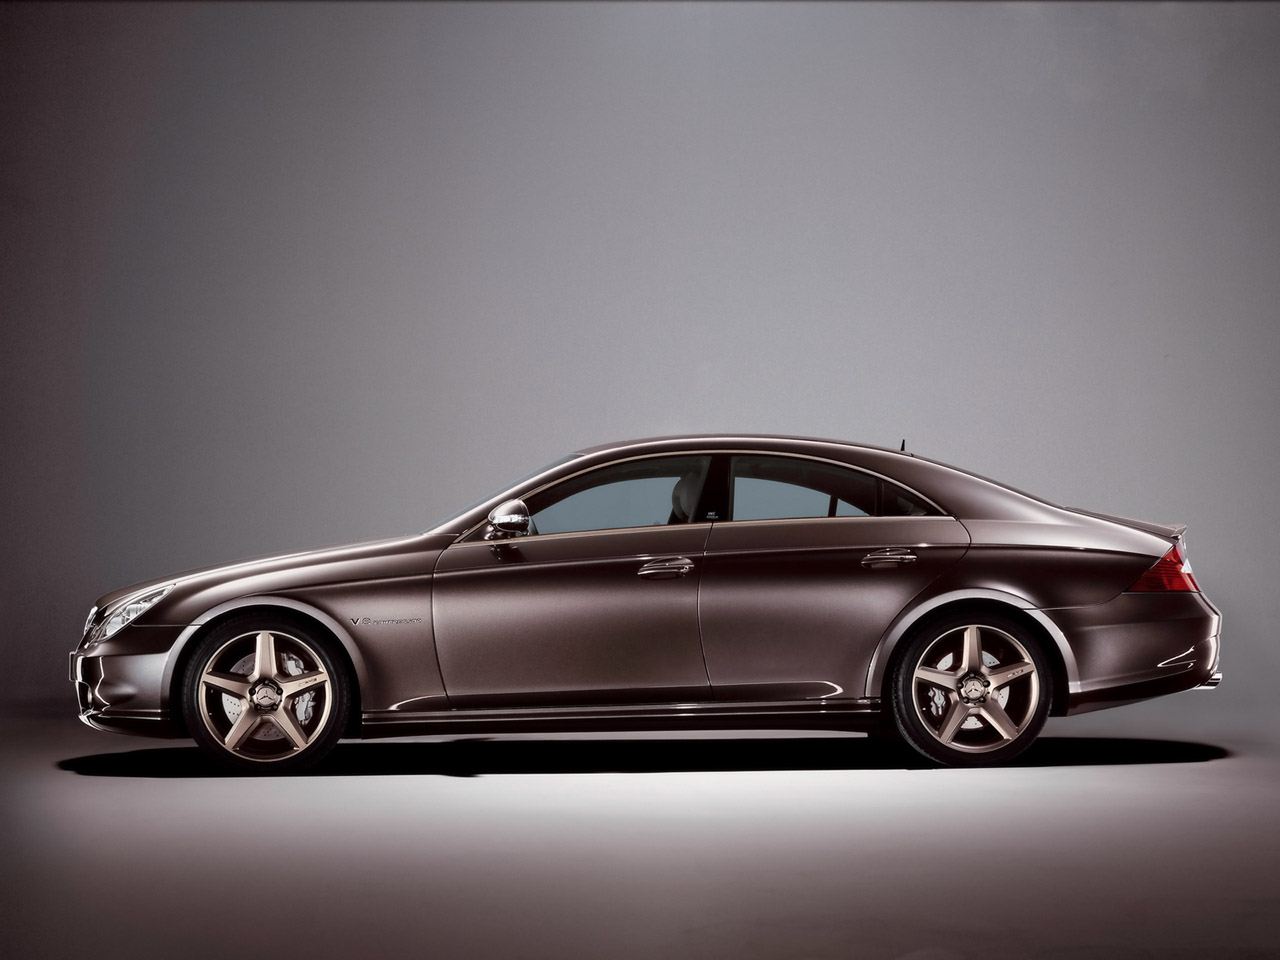 Mercedes-Benz CL 55 AMG photo 03